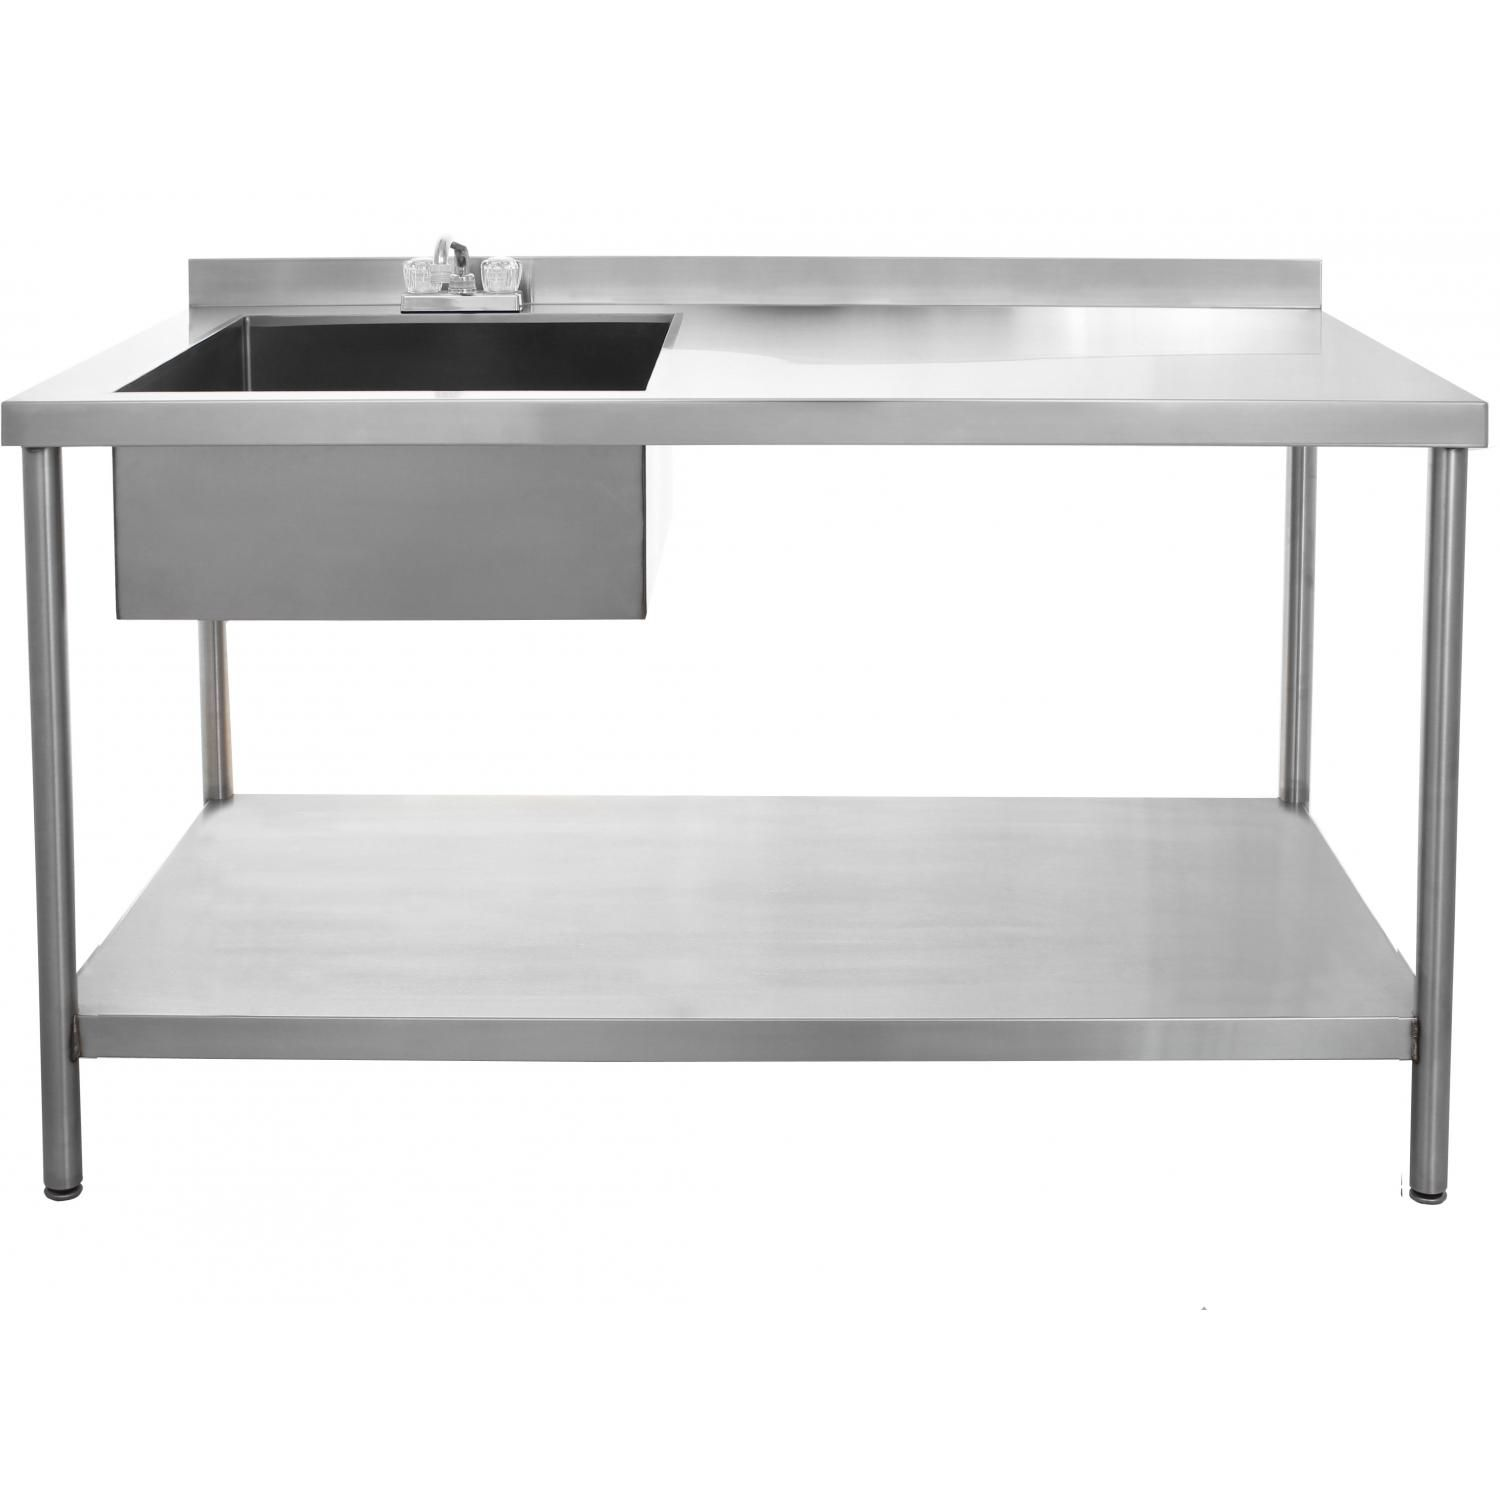 Bbqguys 30 X 60 Inch Outdoor Rated Stainless Steel Utility Table With Sink And Hot Cold Faucet Bbqguys Stainless Steel Table Steel Desk Stainless Steel Coffee Table